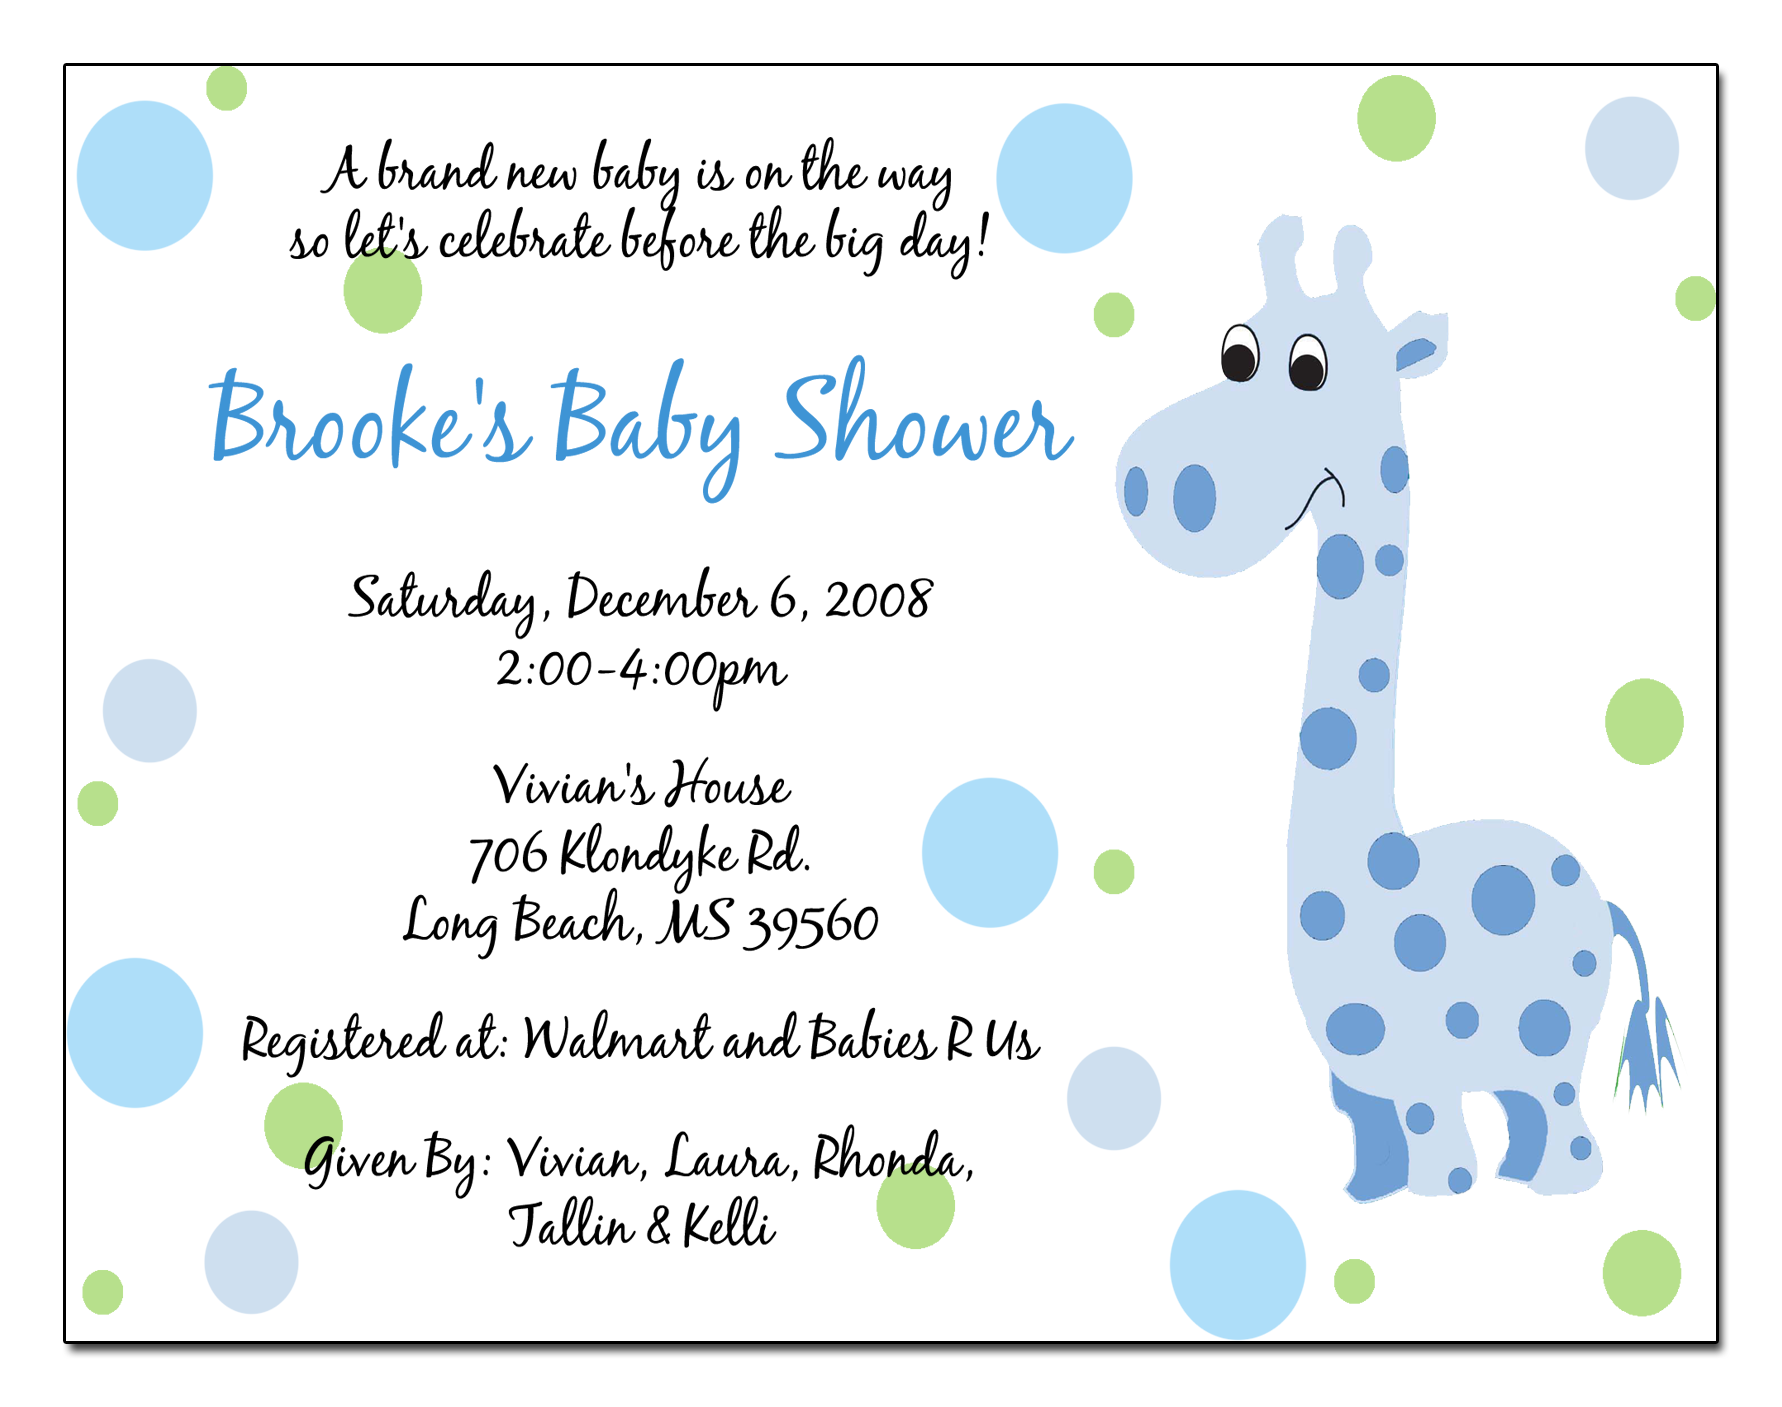 Baby Shower Invitation Wording – How to Word a Baby Shower Invitation